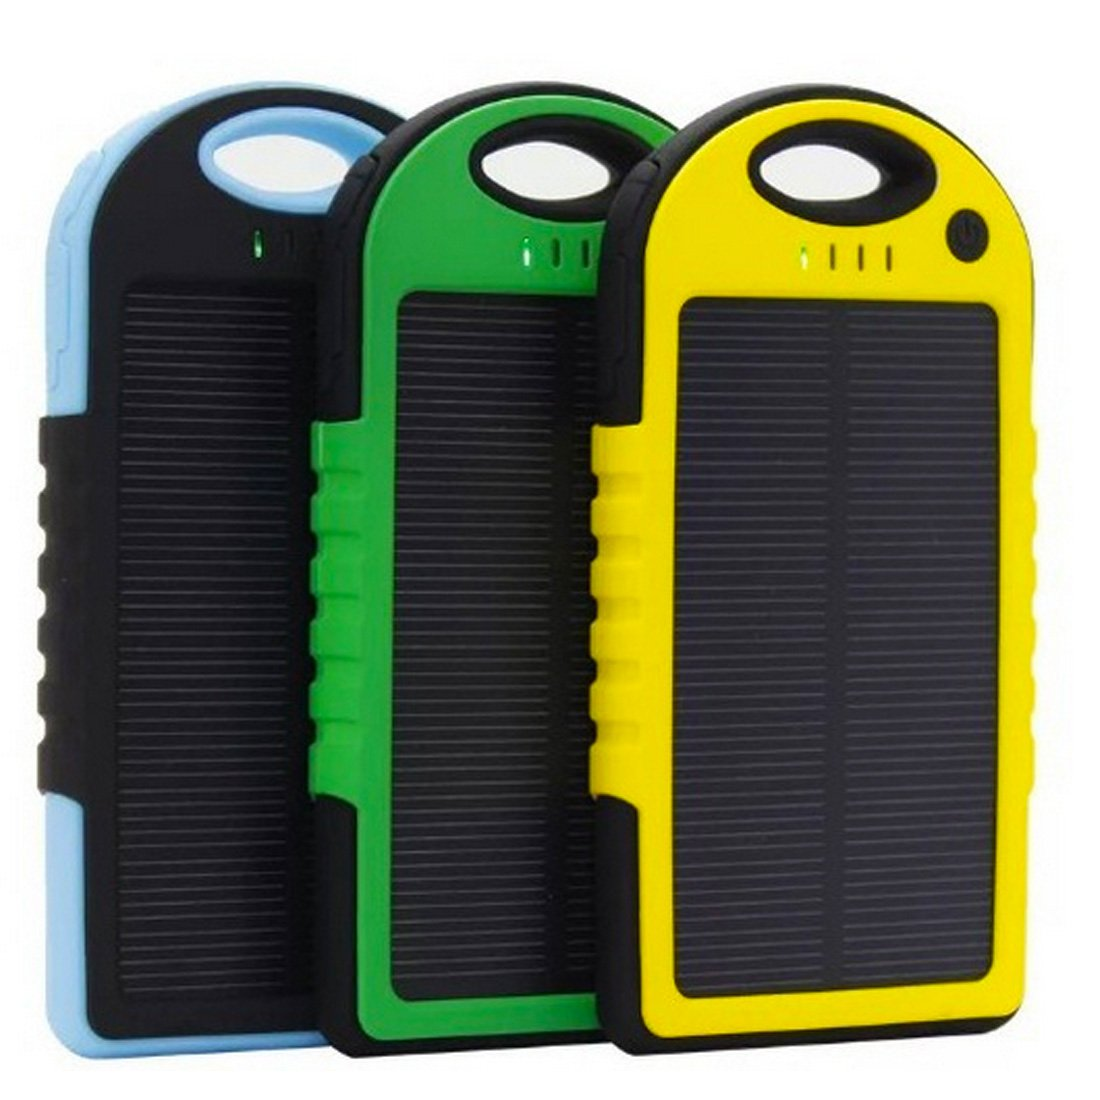 Portable Solar Powered Cell Phone Battery Charger - Shopptique